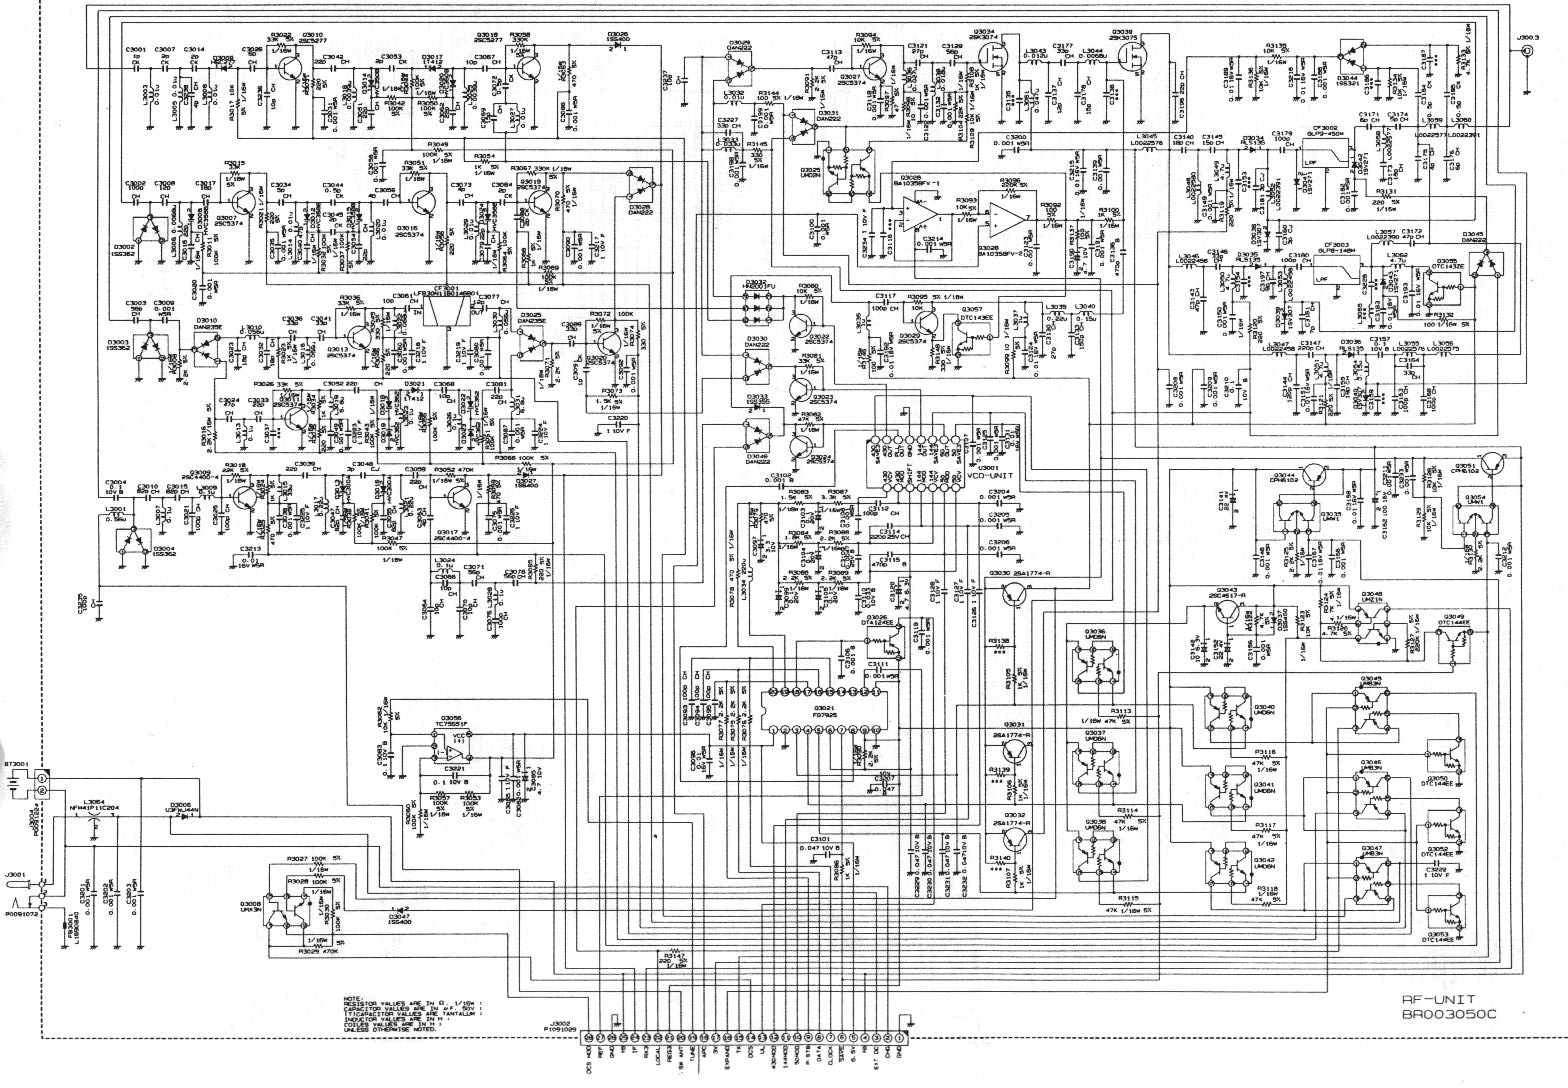 YAESU VX 5 Schematic c index of pub radio_manuals yaesu Yaesu G-450A at creativeand.co